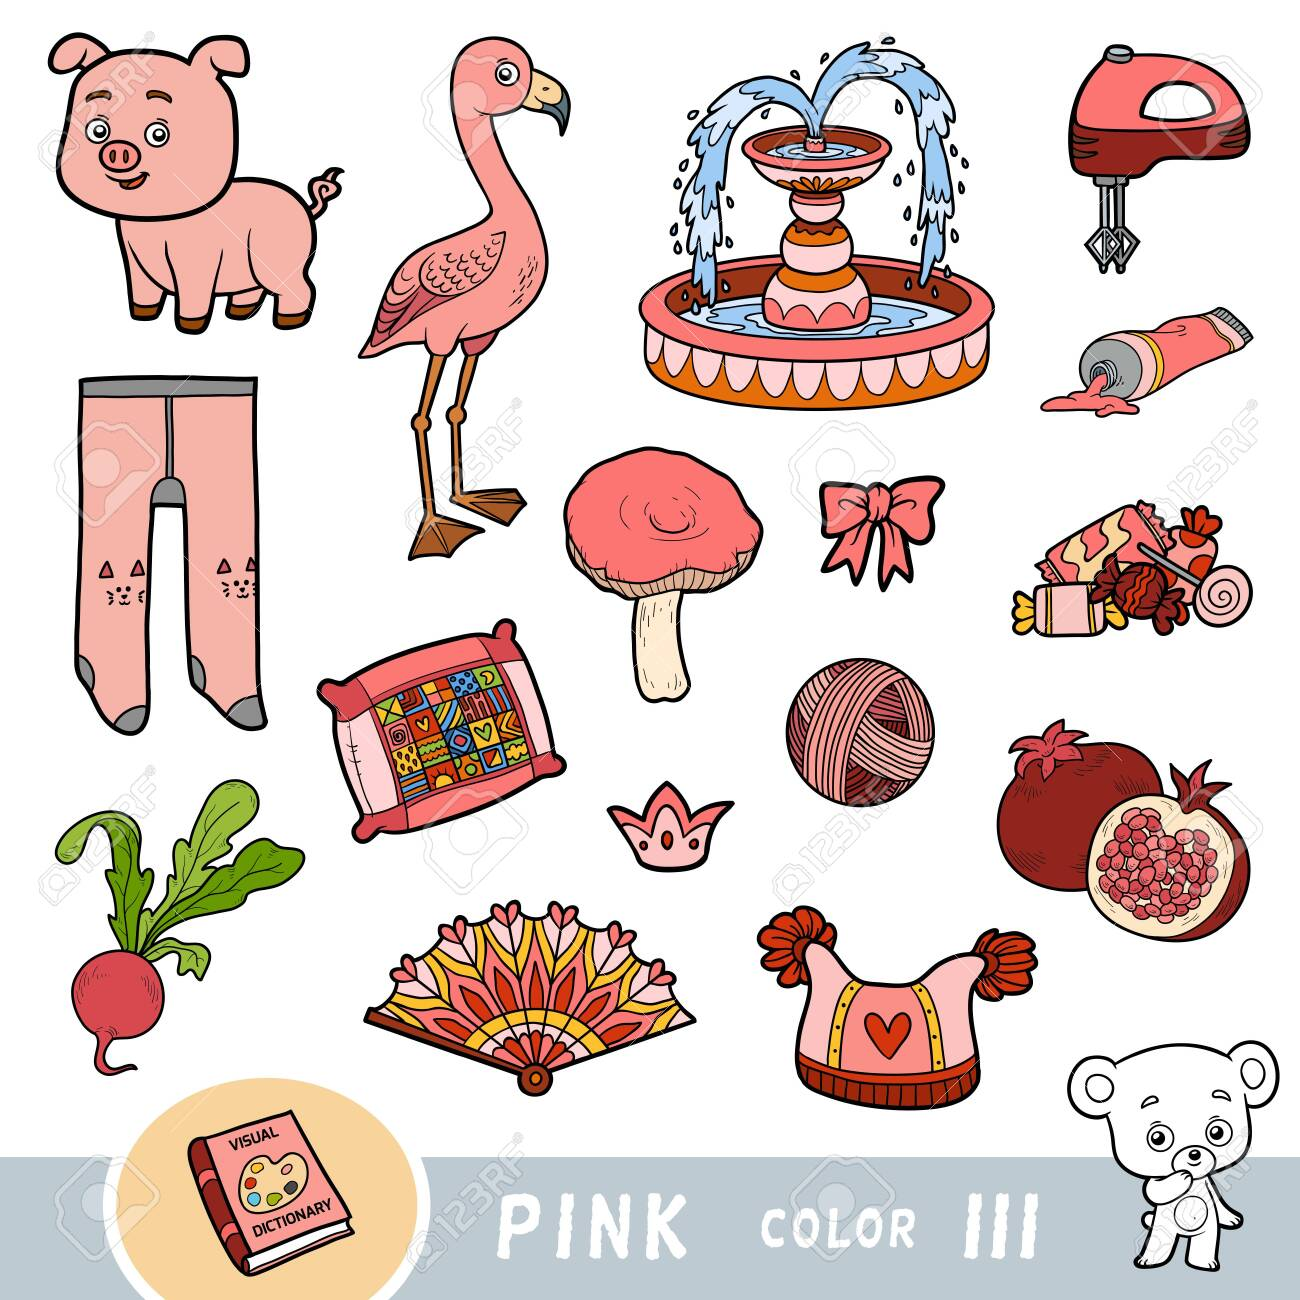 Colorful set of pink color objects. Visual dictionary for children about the basic colors. Cartoon images to learning in kindergarten and preschool - 136781248